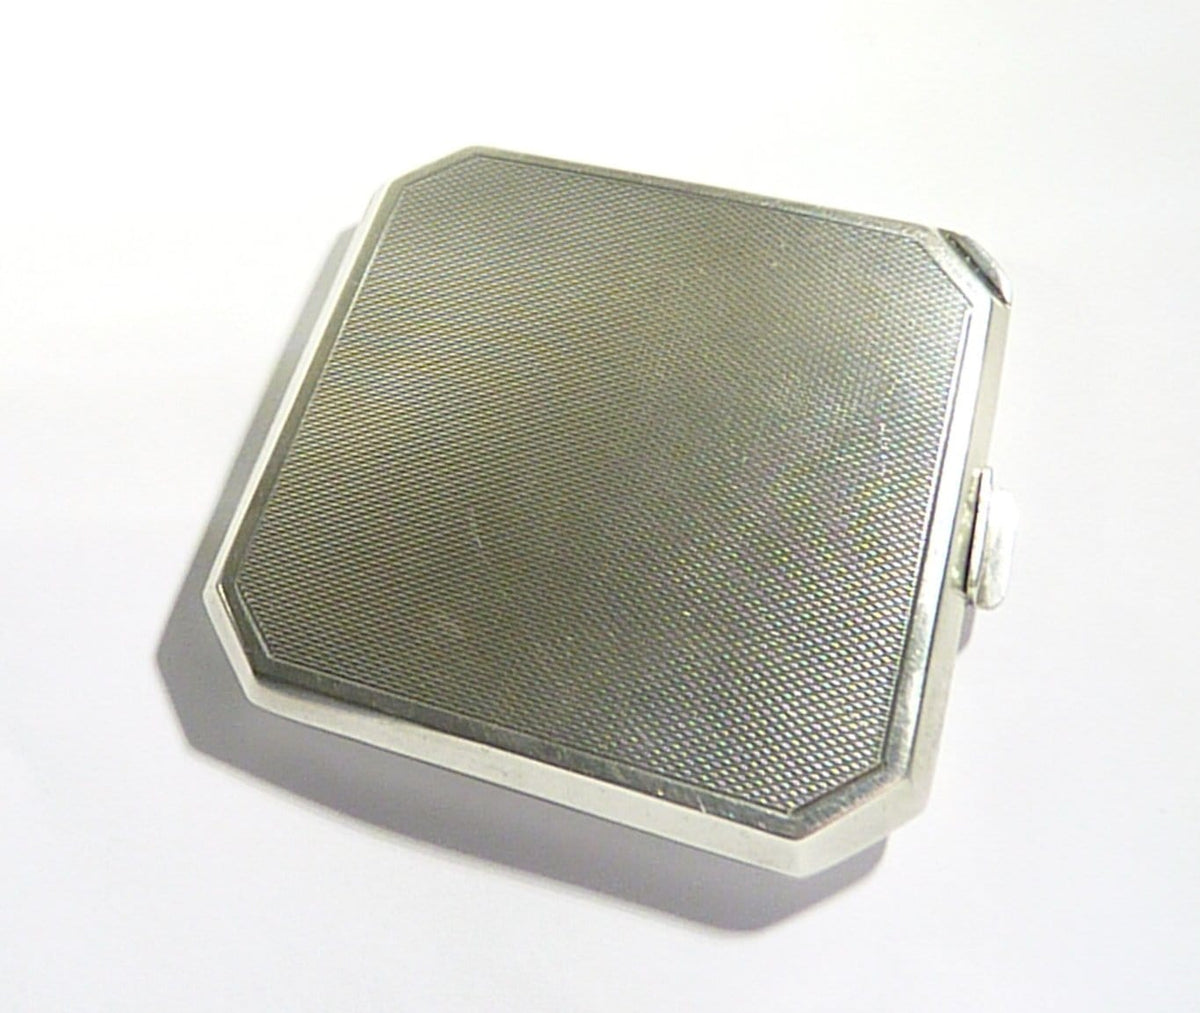 Chester Assayed Silver Compact Mirror